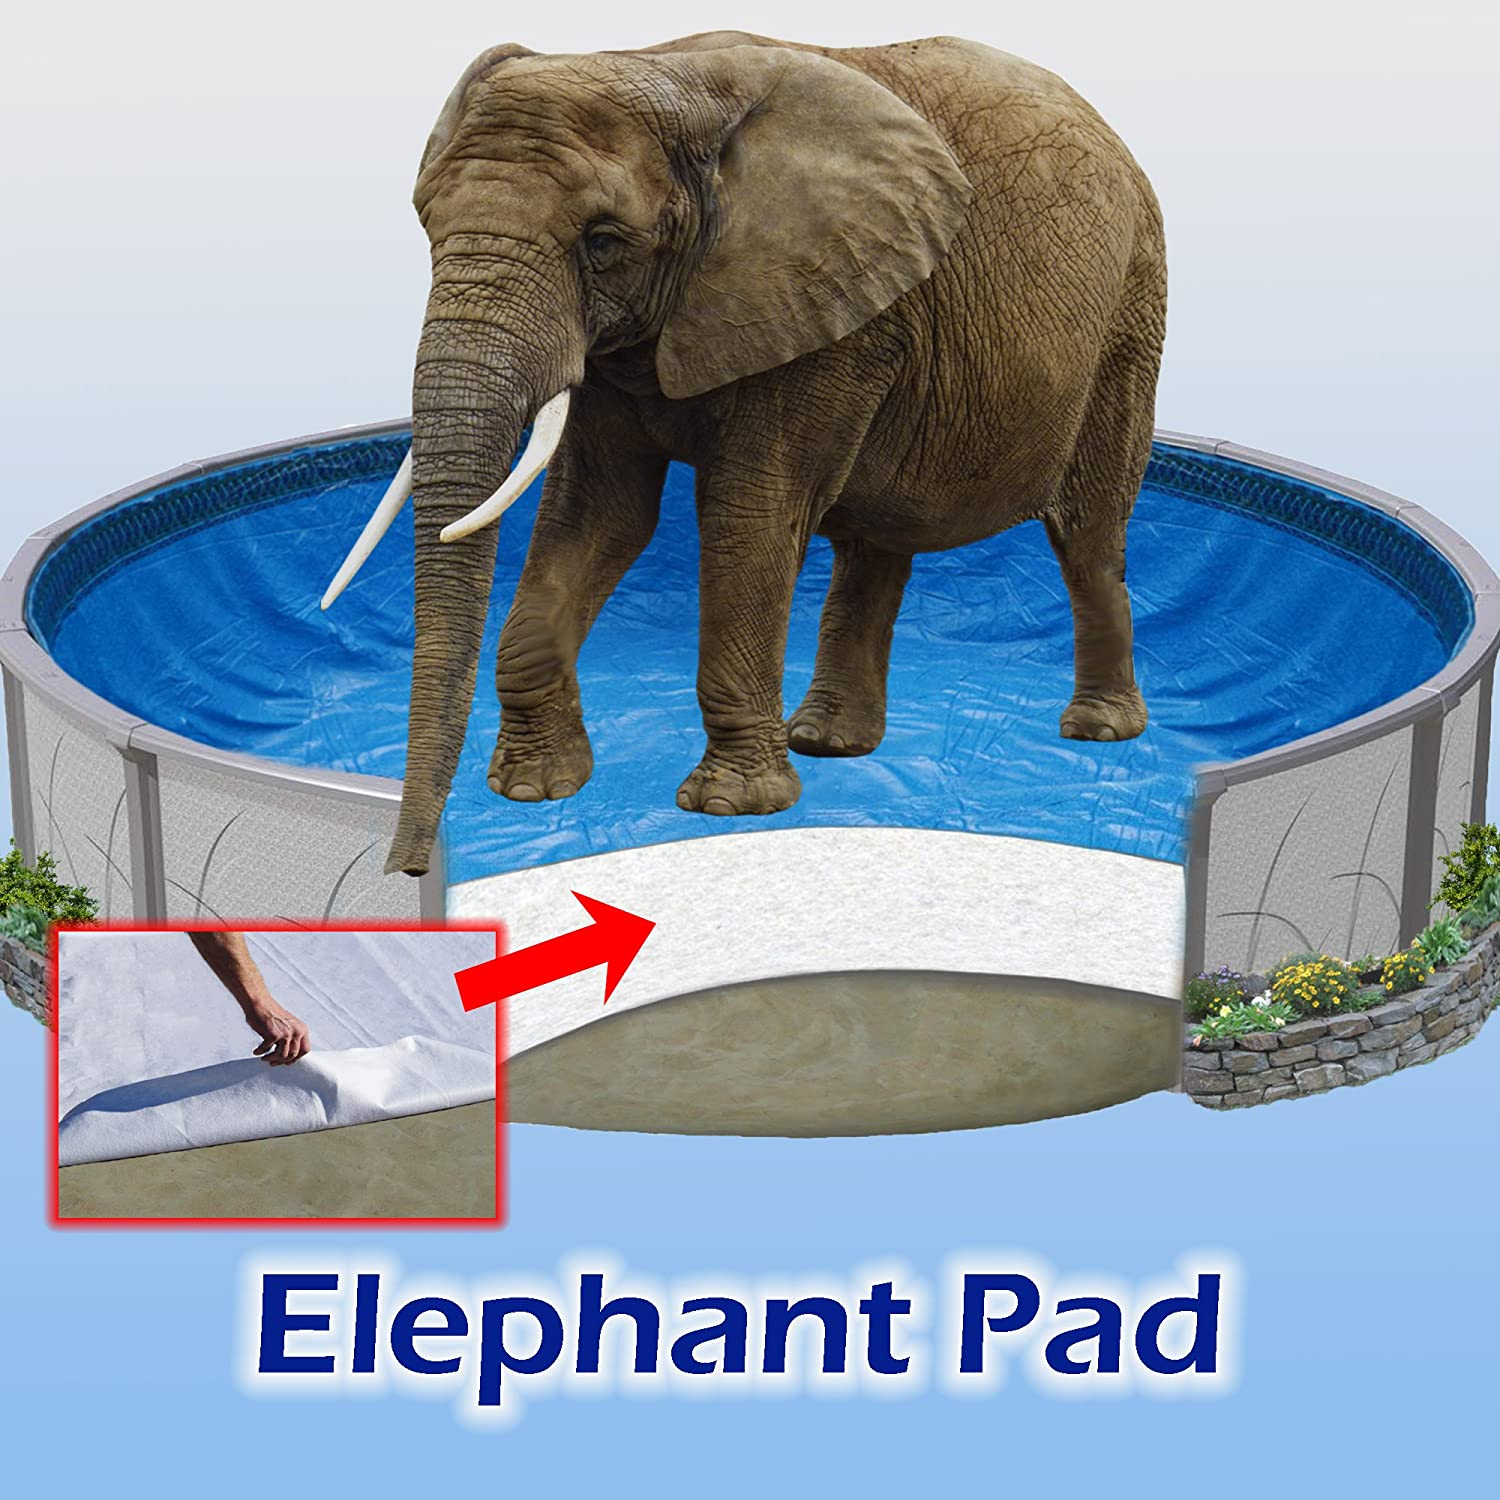 12 ft Round Pool Liner Pad, Elephant Guard Armor Shield Padding 81xRrKKNDQL